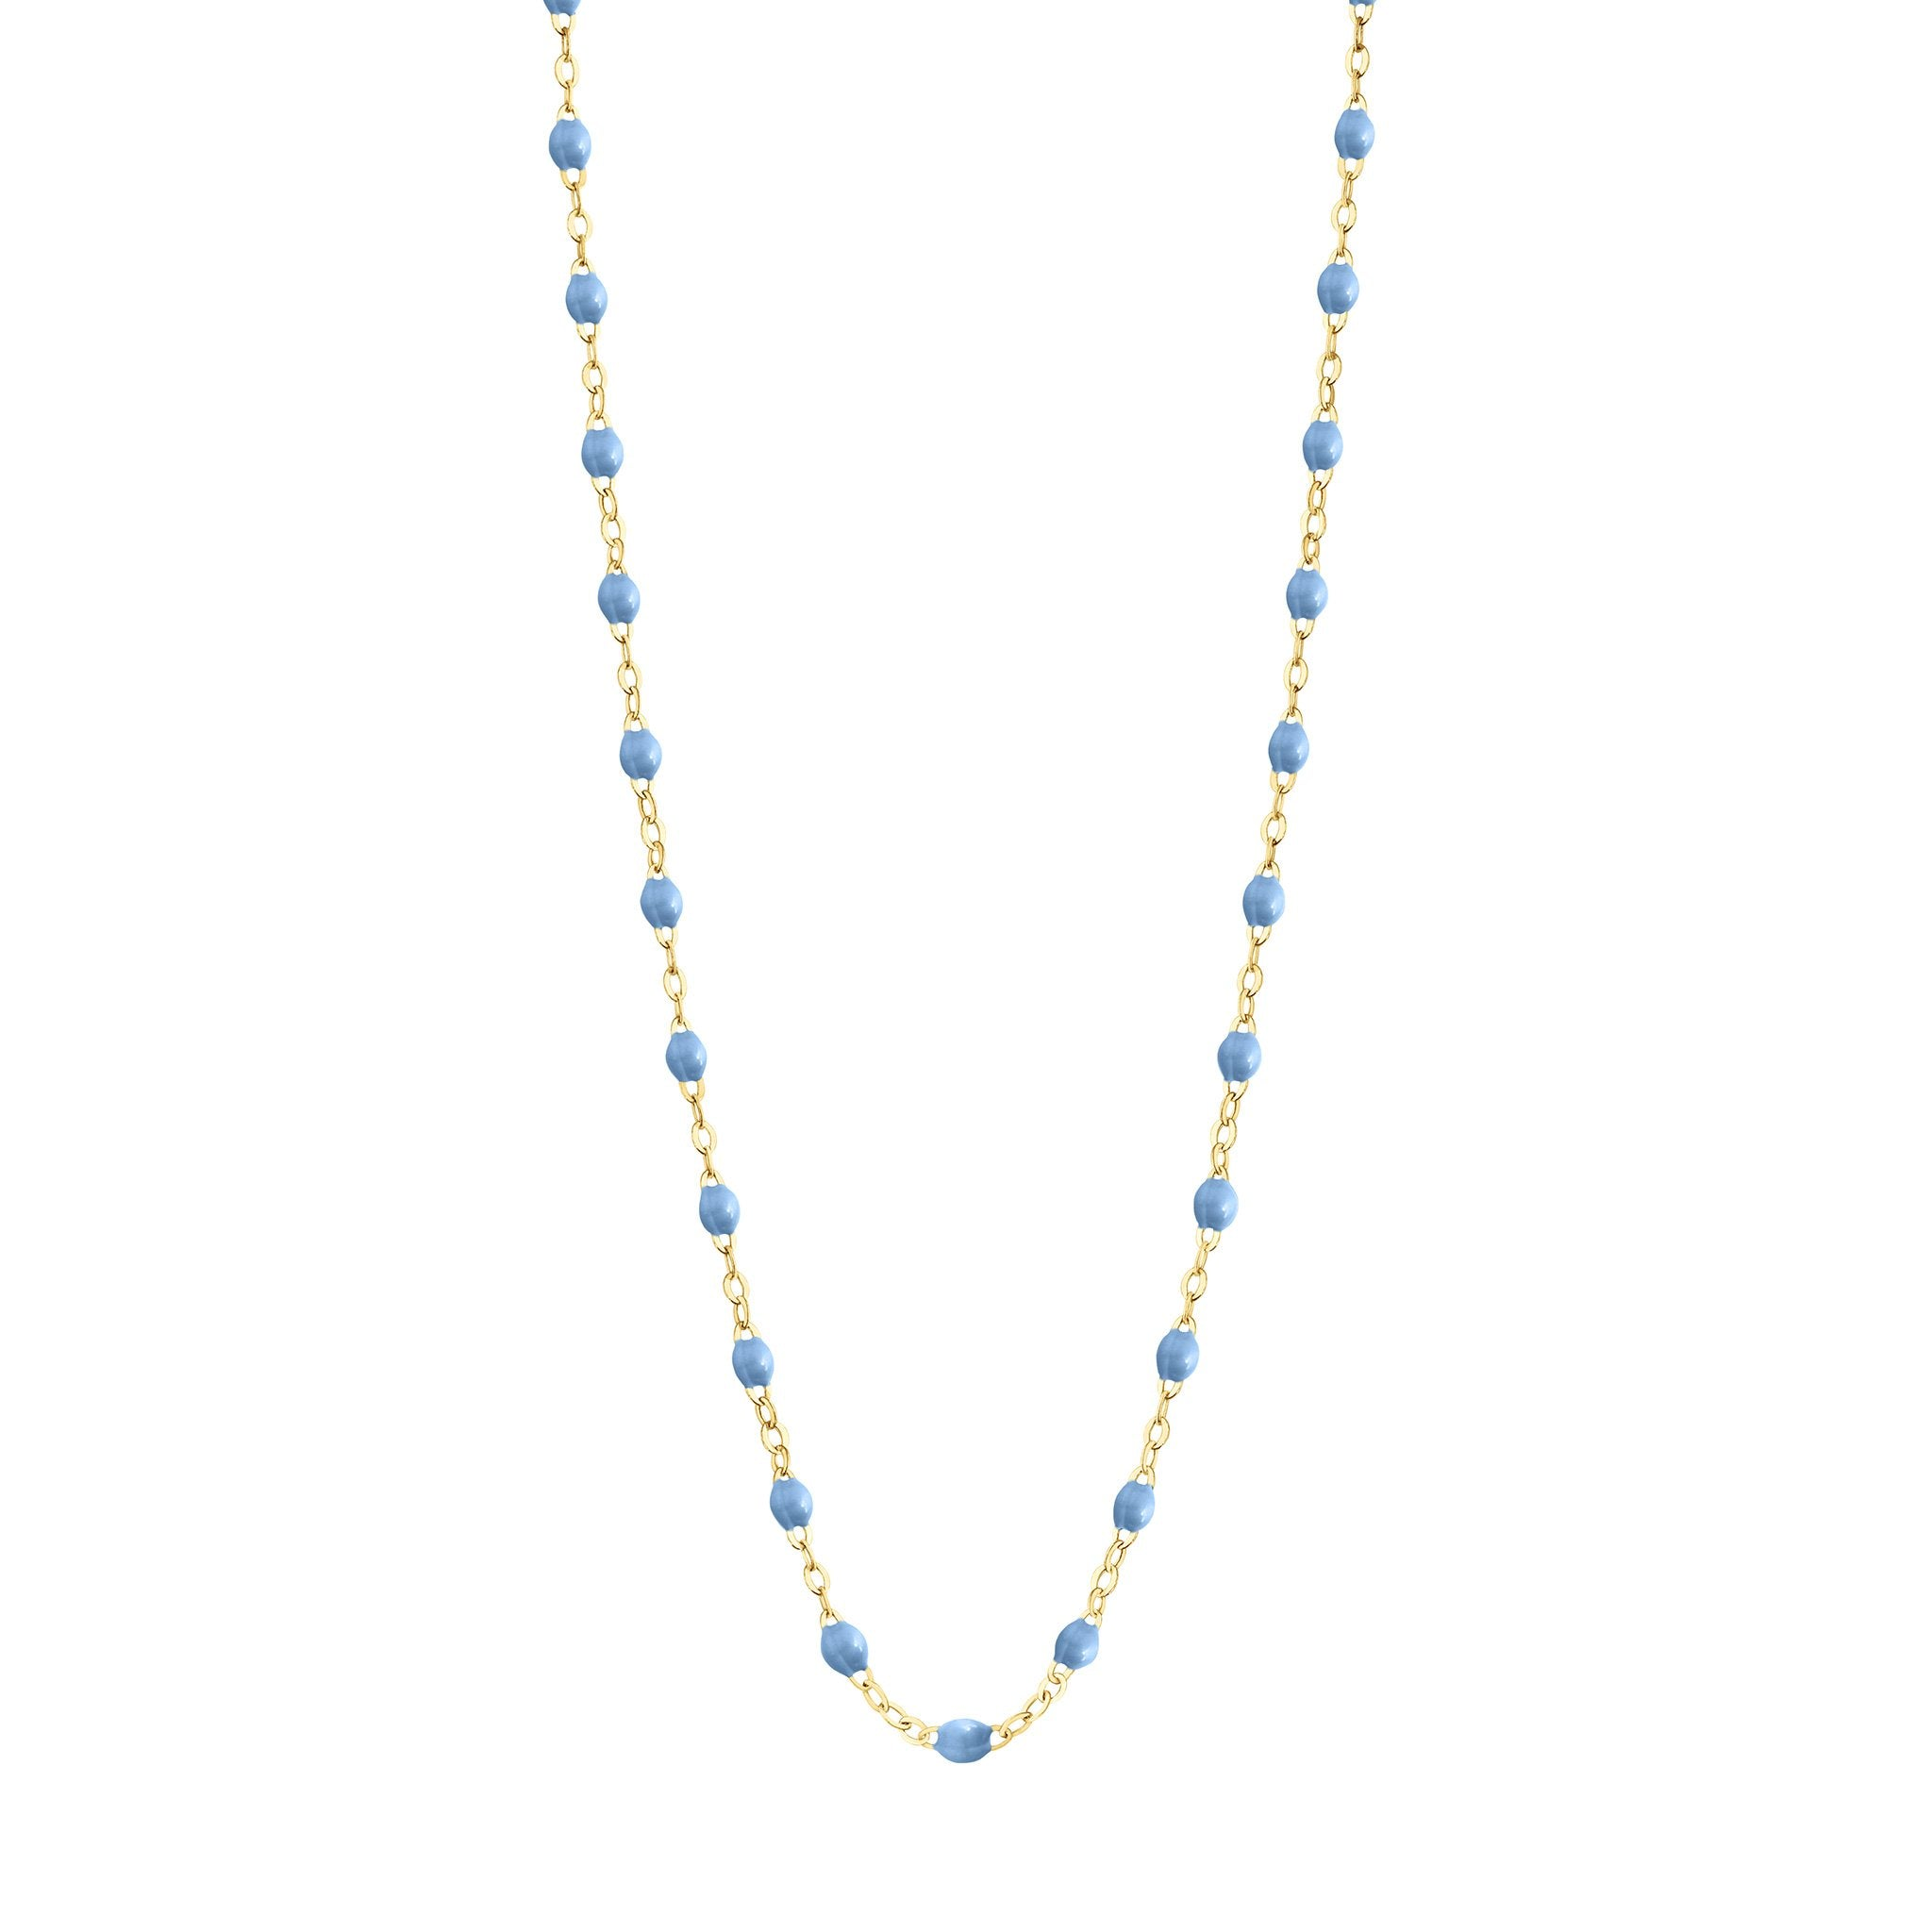 Gigi Clozeau - Classic Gigi Sky necklace, Yellow Gold, 19.7""